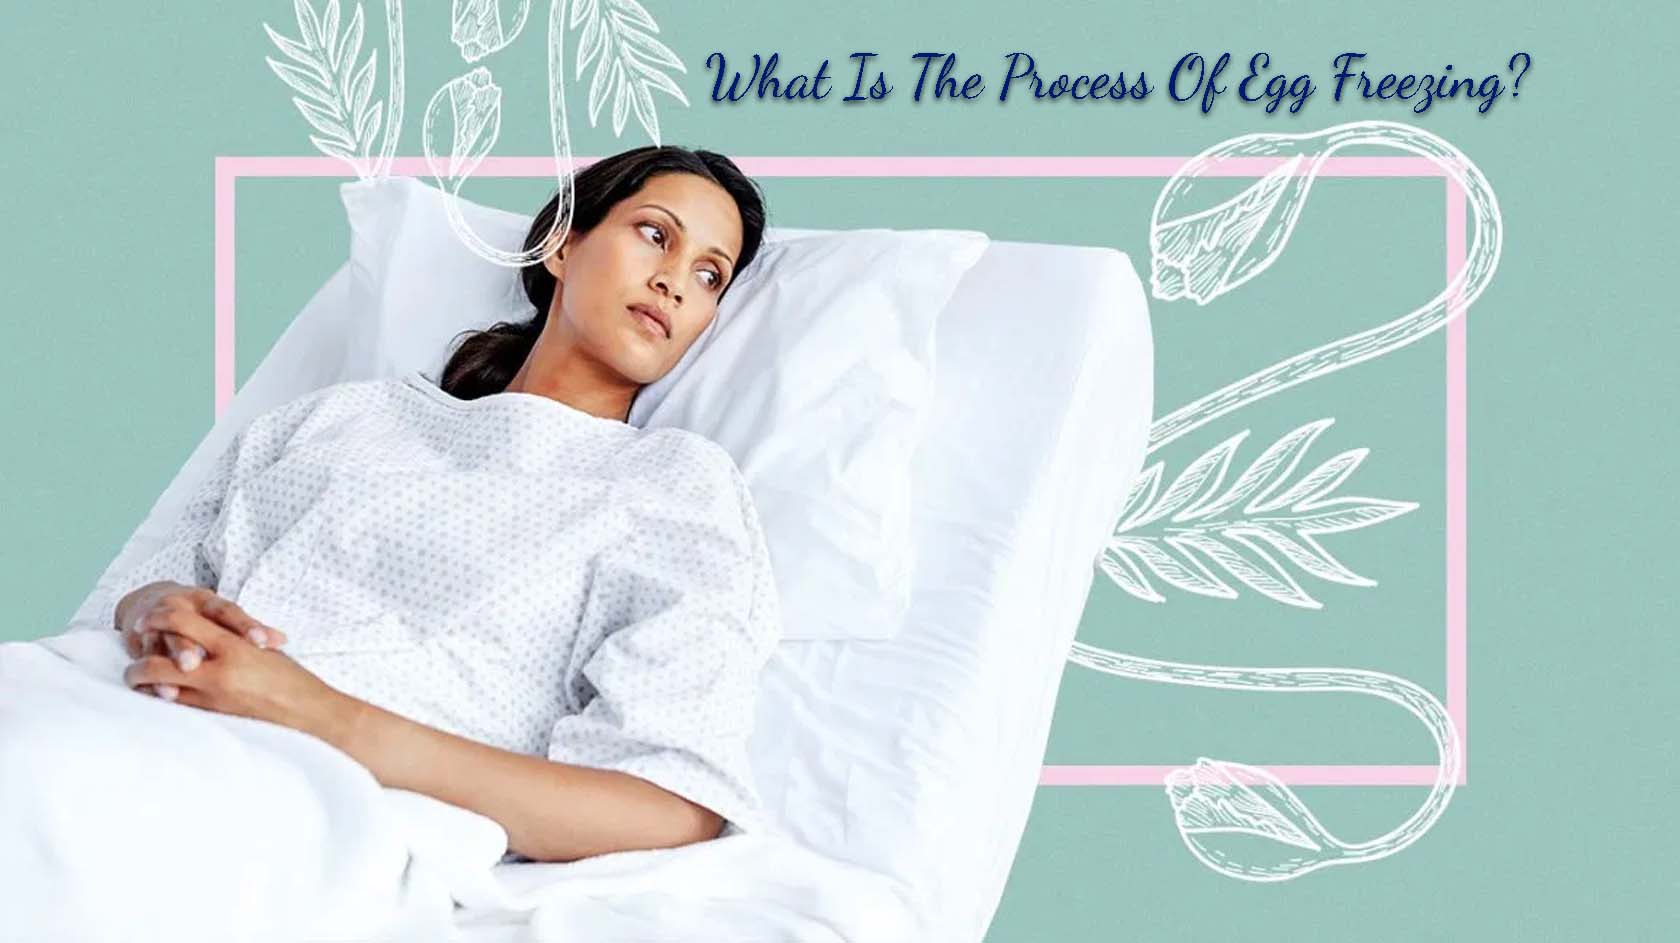 What Is The Process Of Egg Freezing?